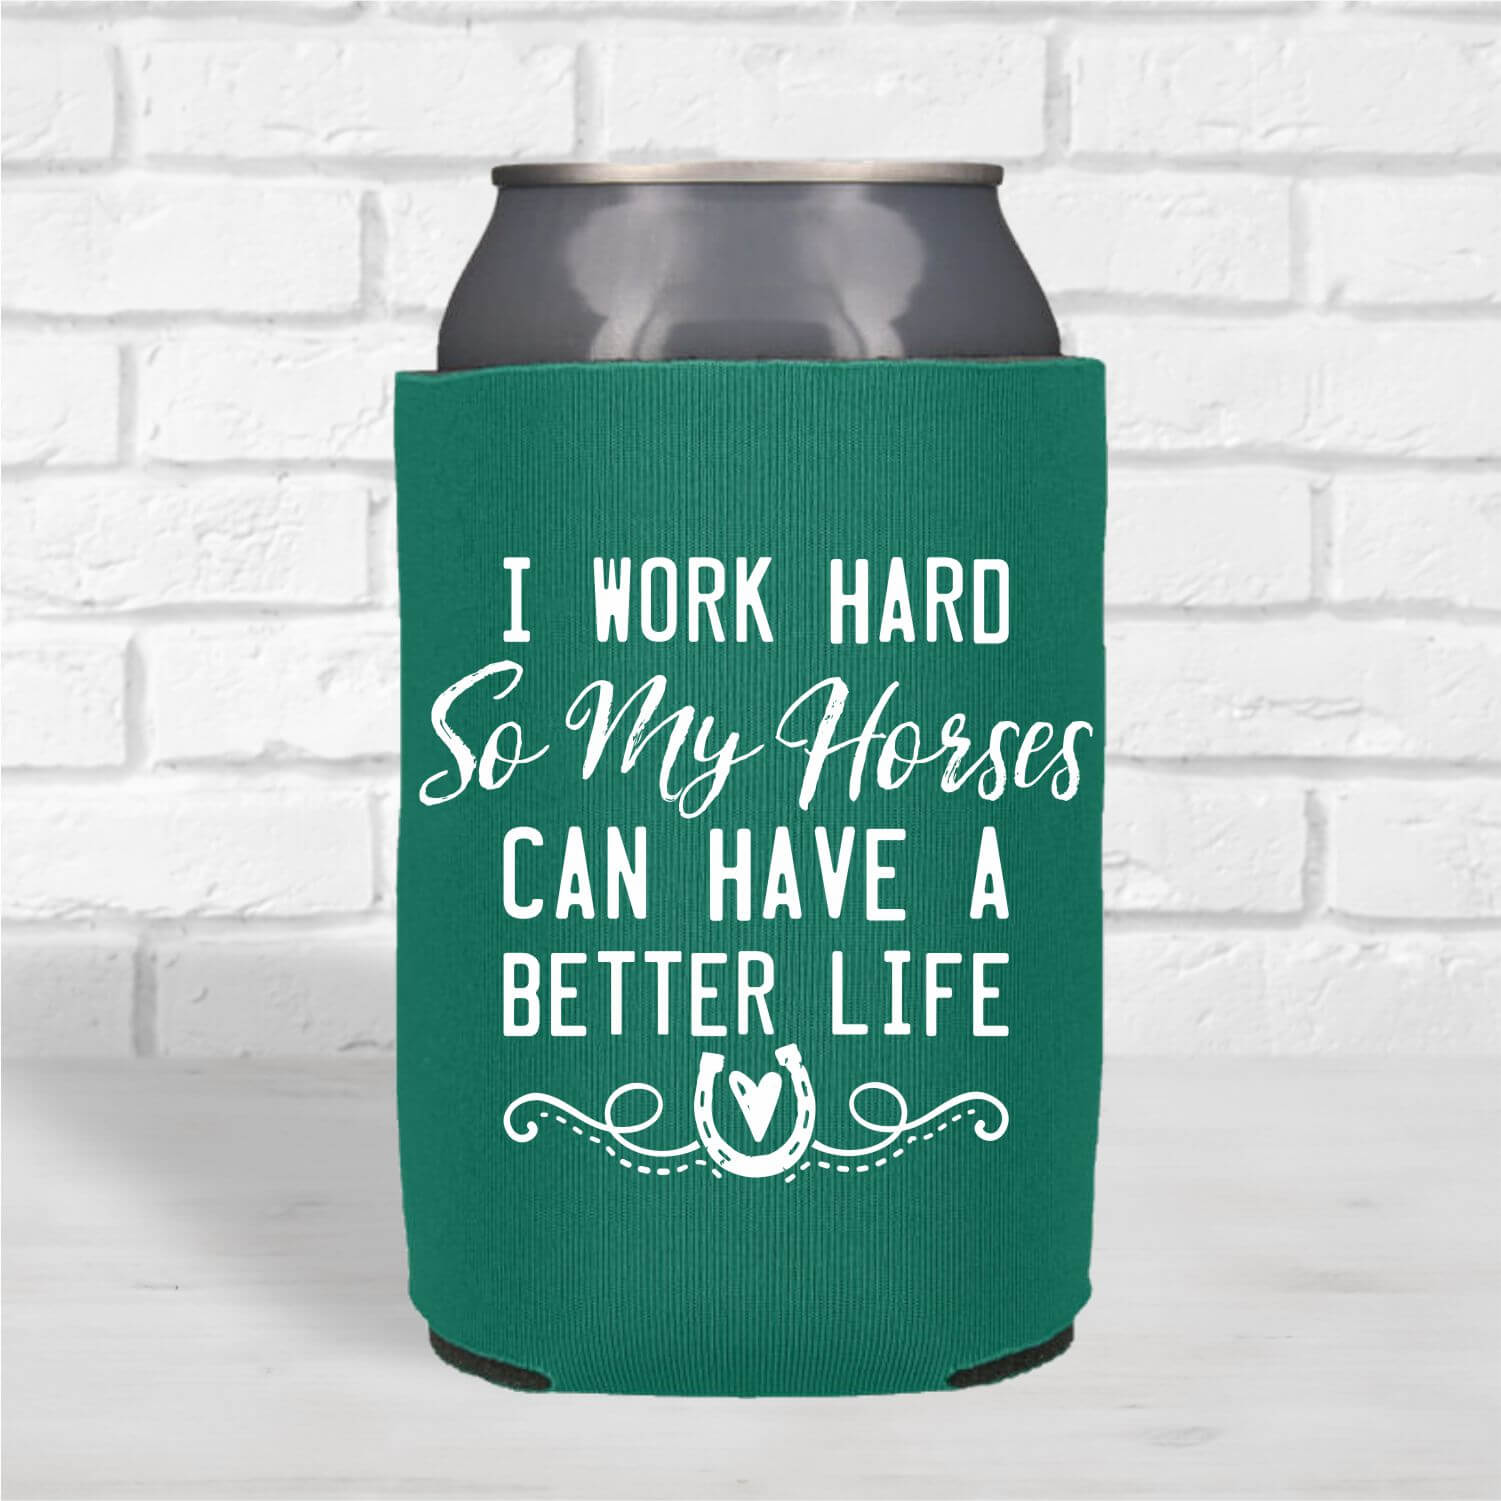 Can Coolers-Work-Hard-Horses